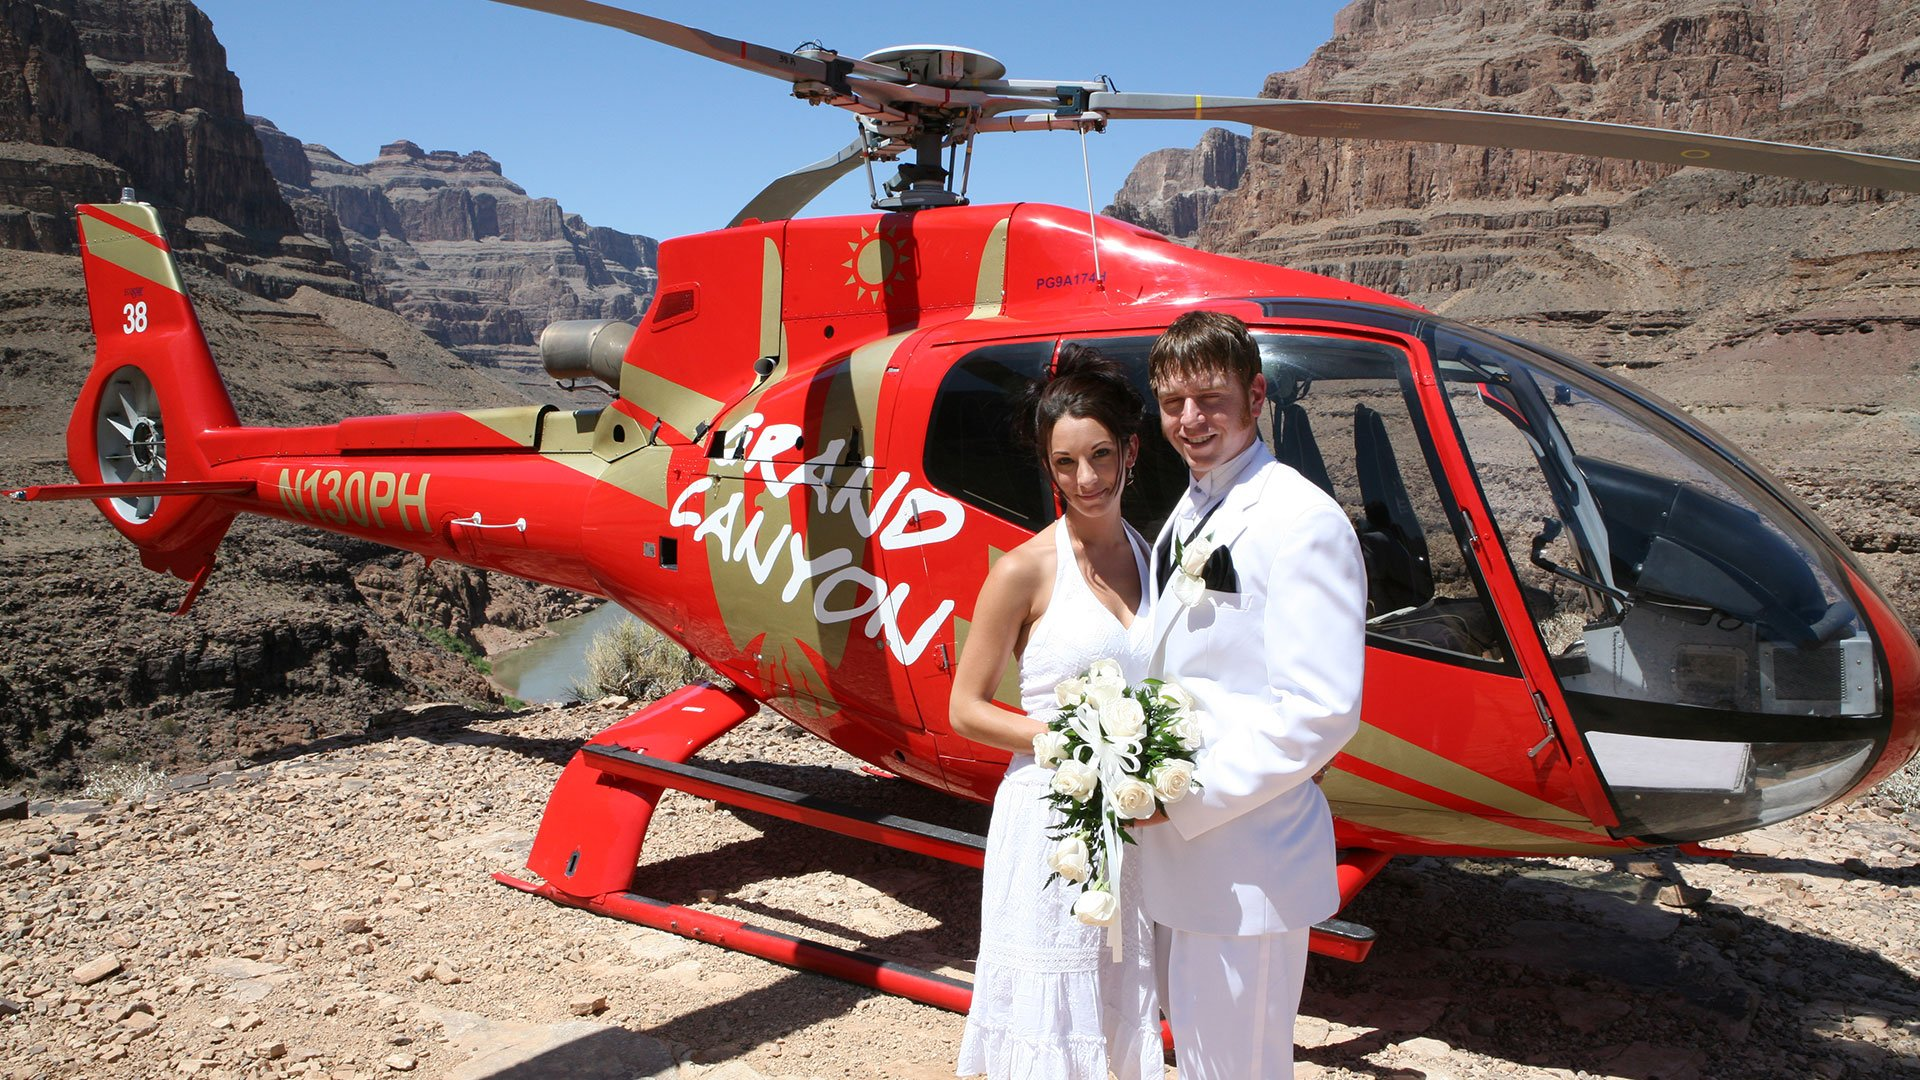 A bride and groom pose in front of a helicopter at the bottom of the Grand Canyon.